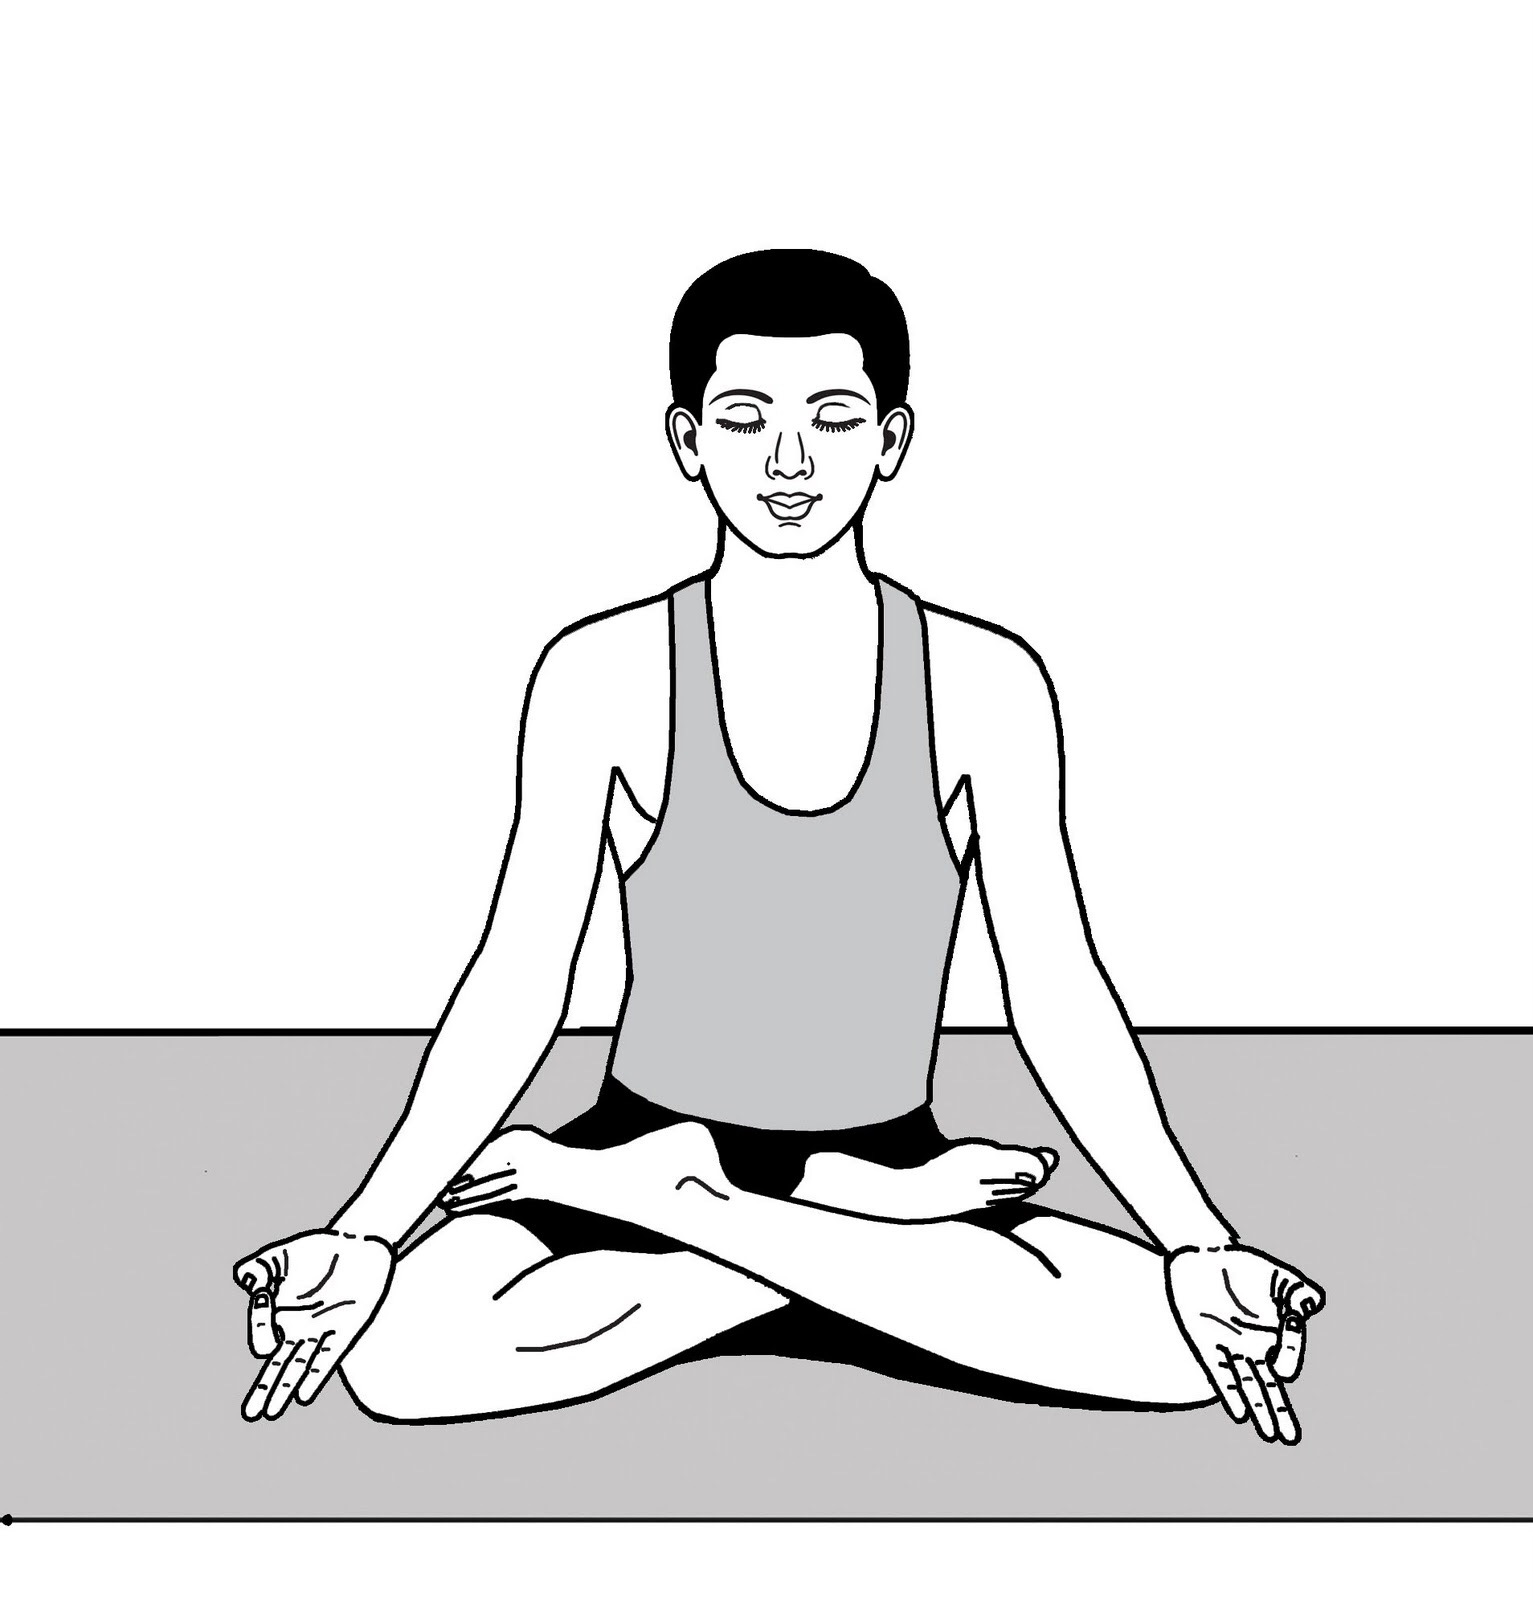 The Classic Yoga Meditation Pose Where Spine Its Straight Eyes Are Down To Gaze Point Know As Nasagrai Focus Is Drawn Inward Towards